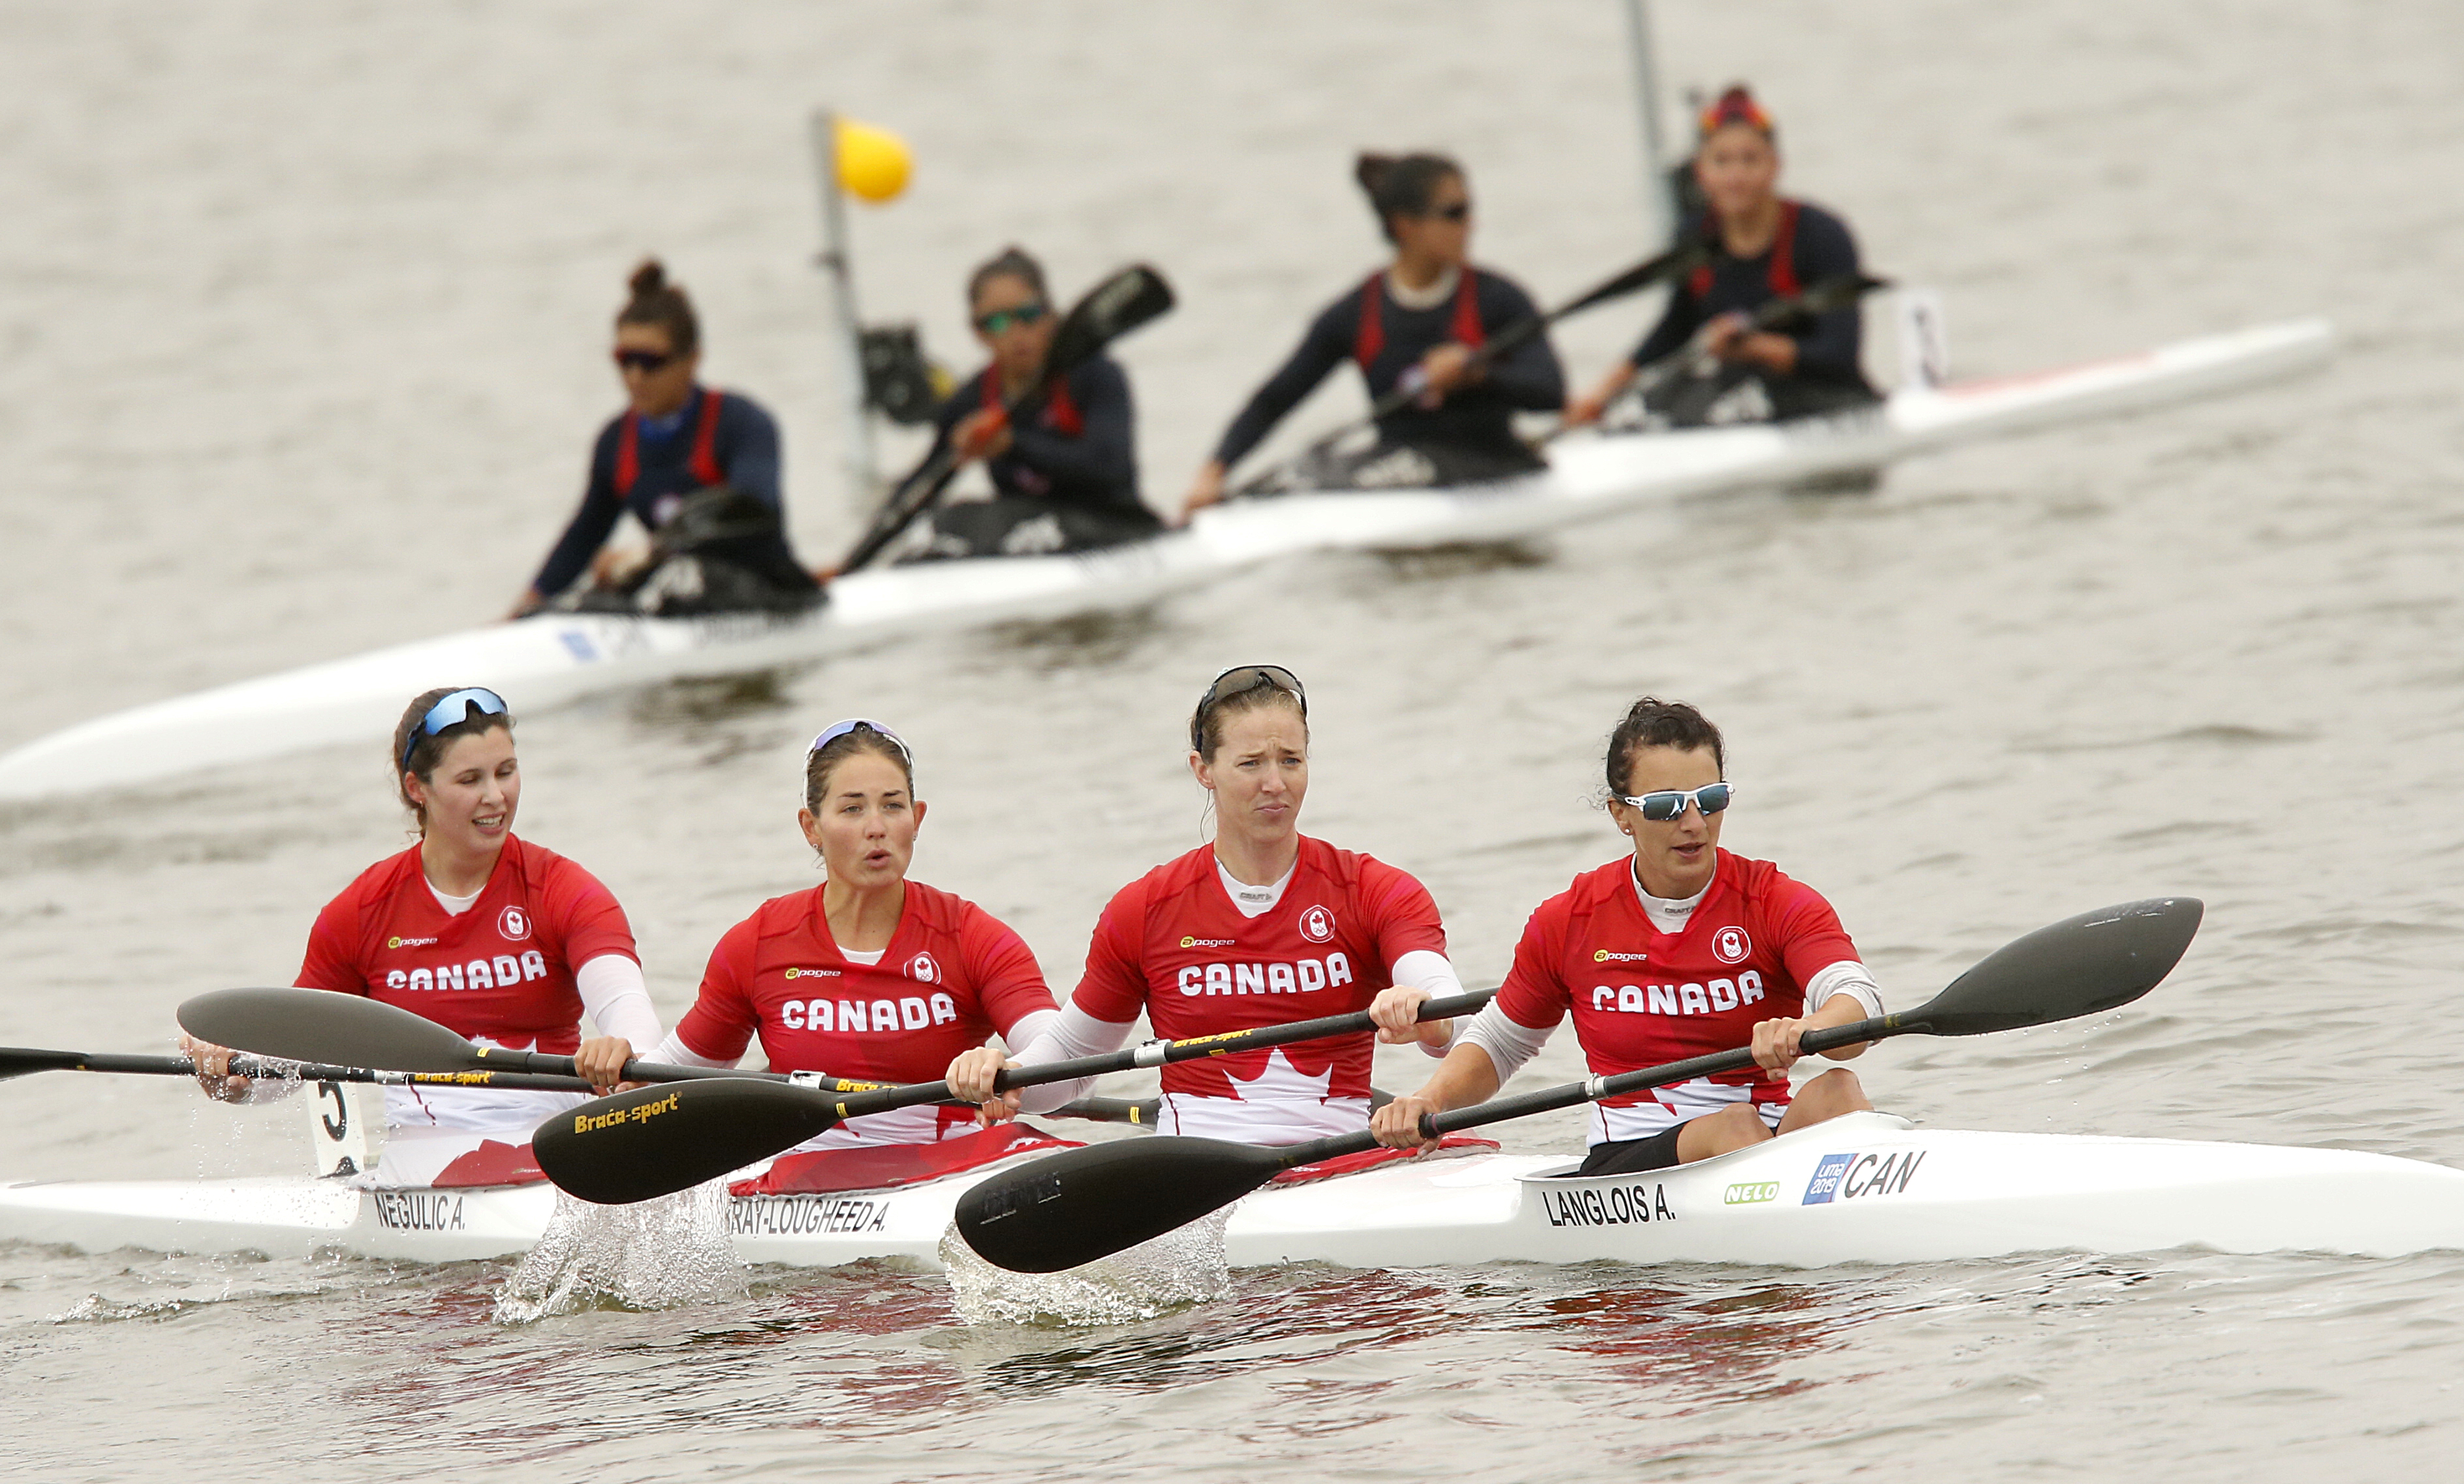 Canadian kayakers in boat on the water